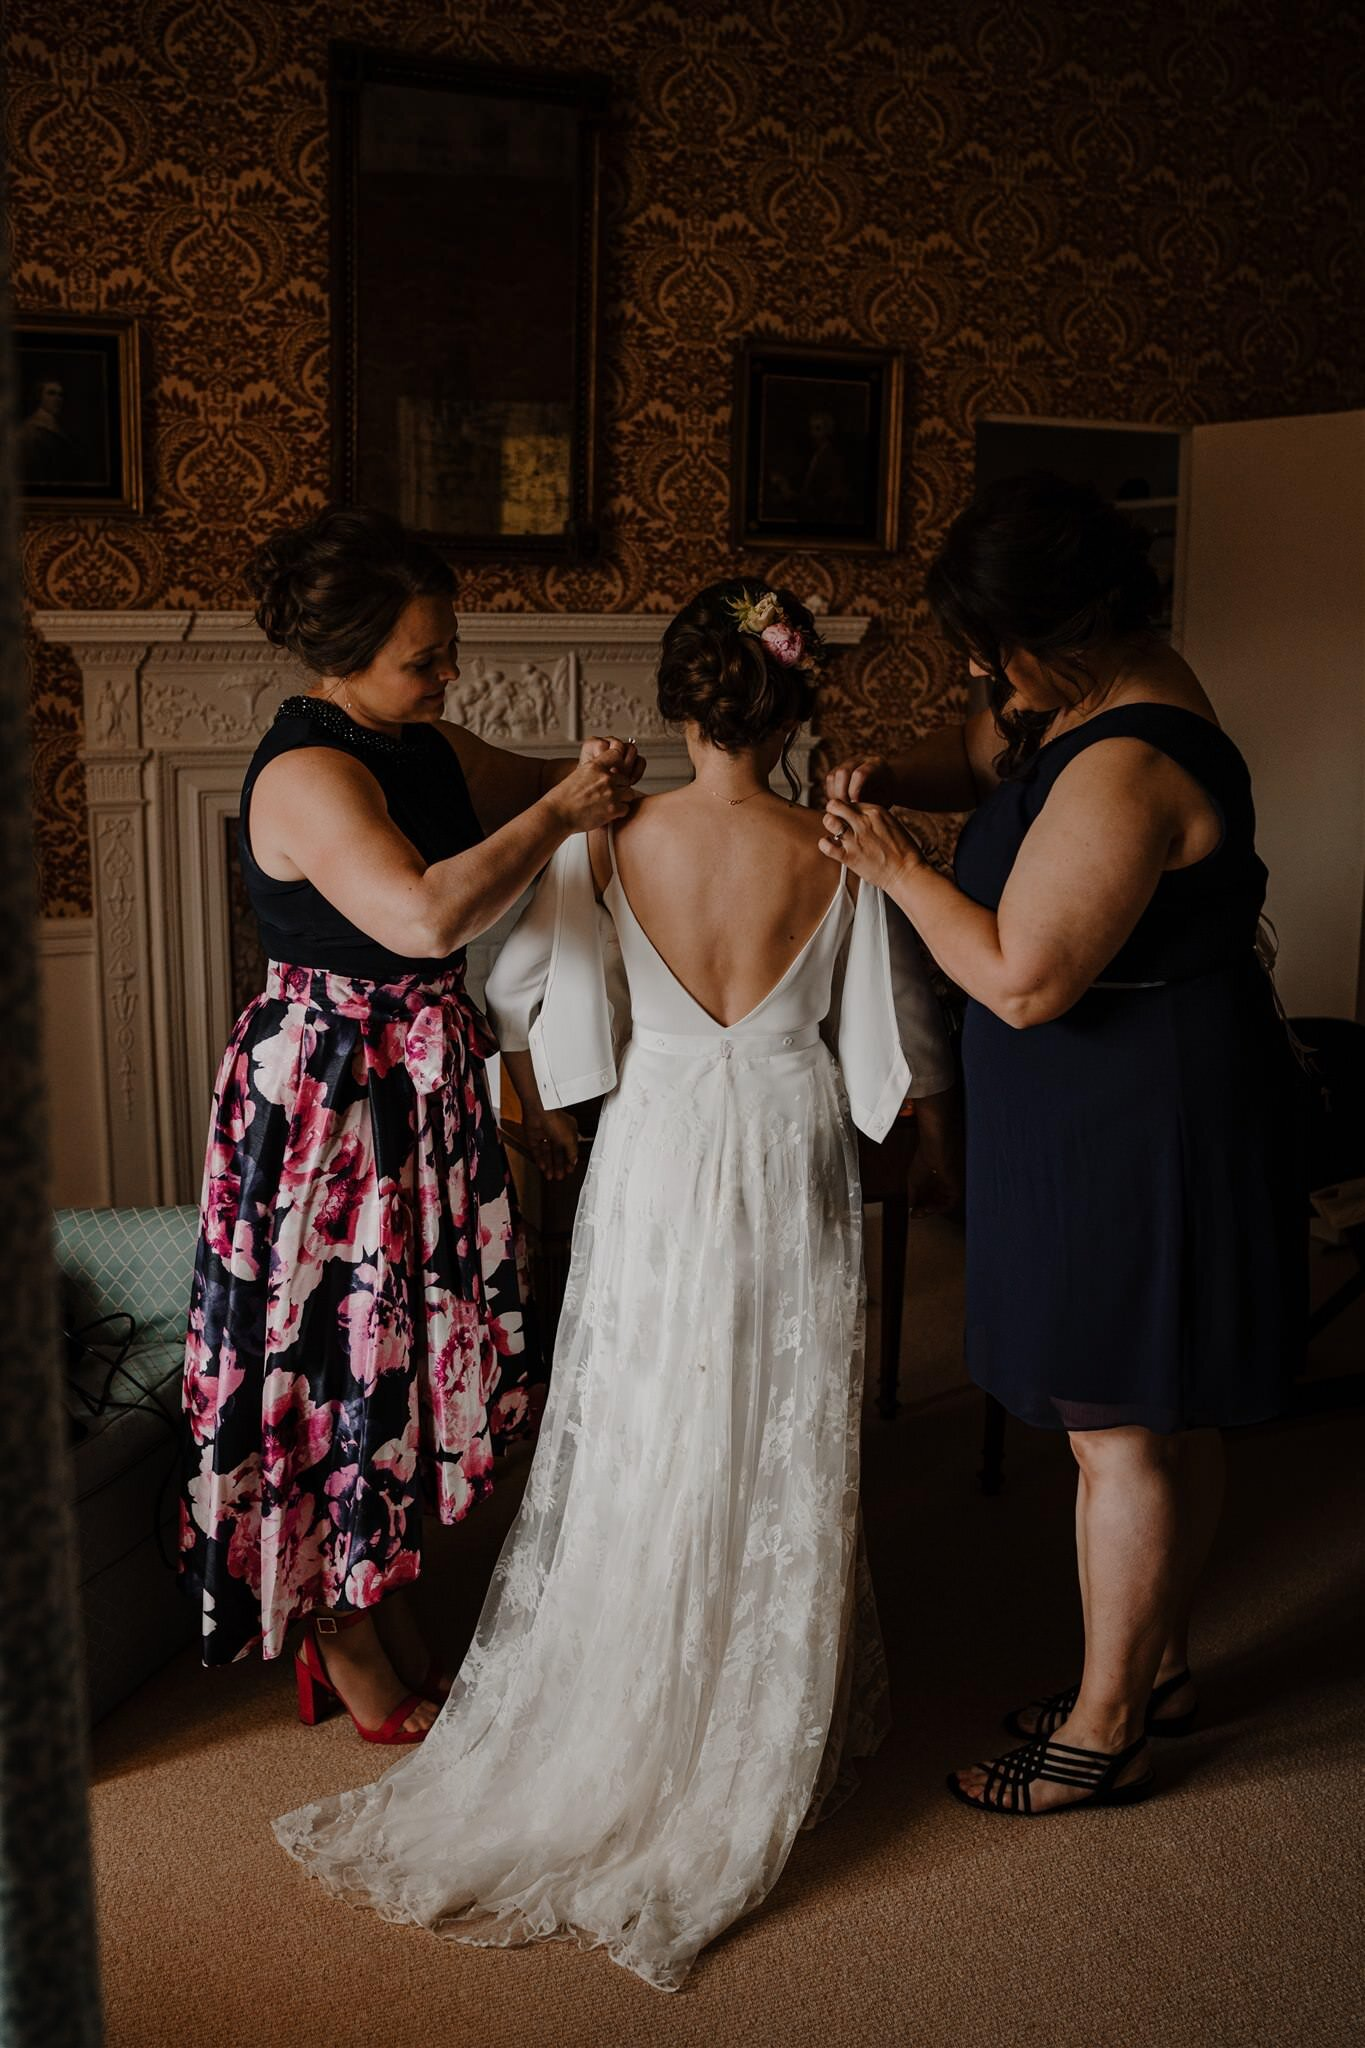 Charlie brear wedding dress bridal prep crom castle